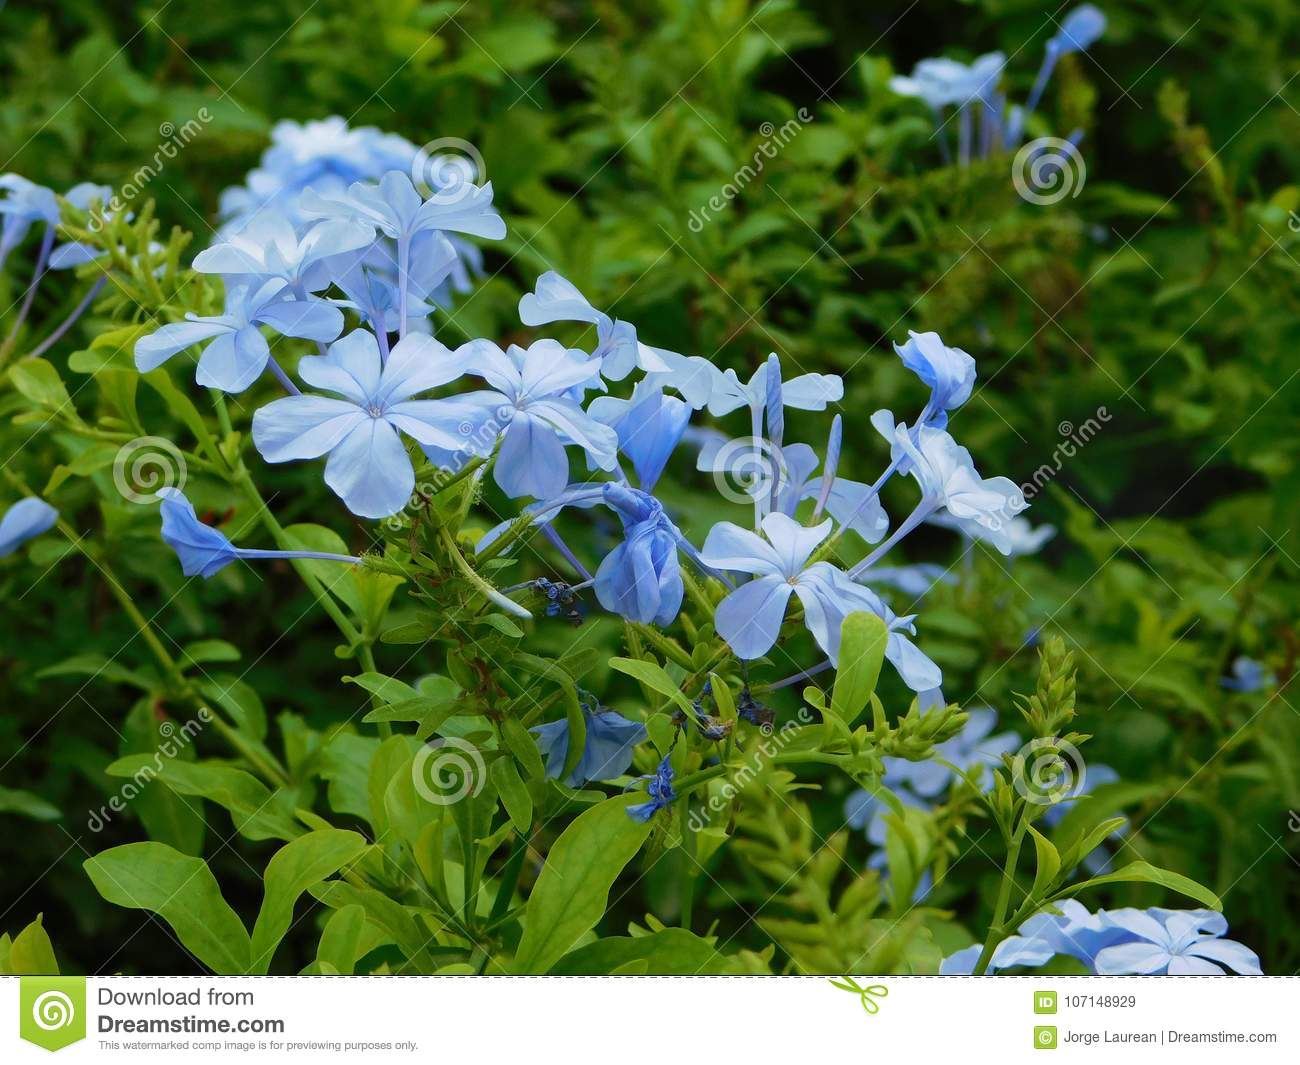 Little blue flowers among green leaves stock image image of light little blue flowers among green leaves izmirmasajfo Choice Image